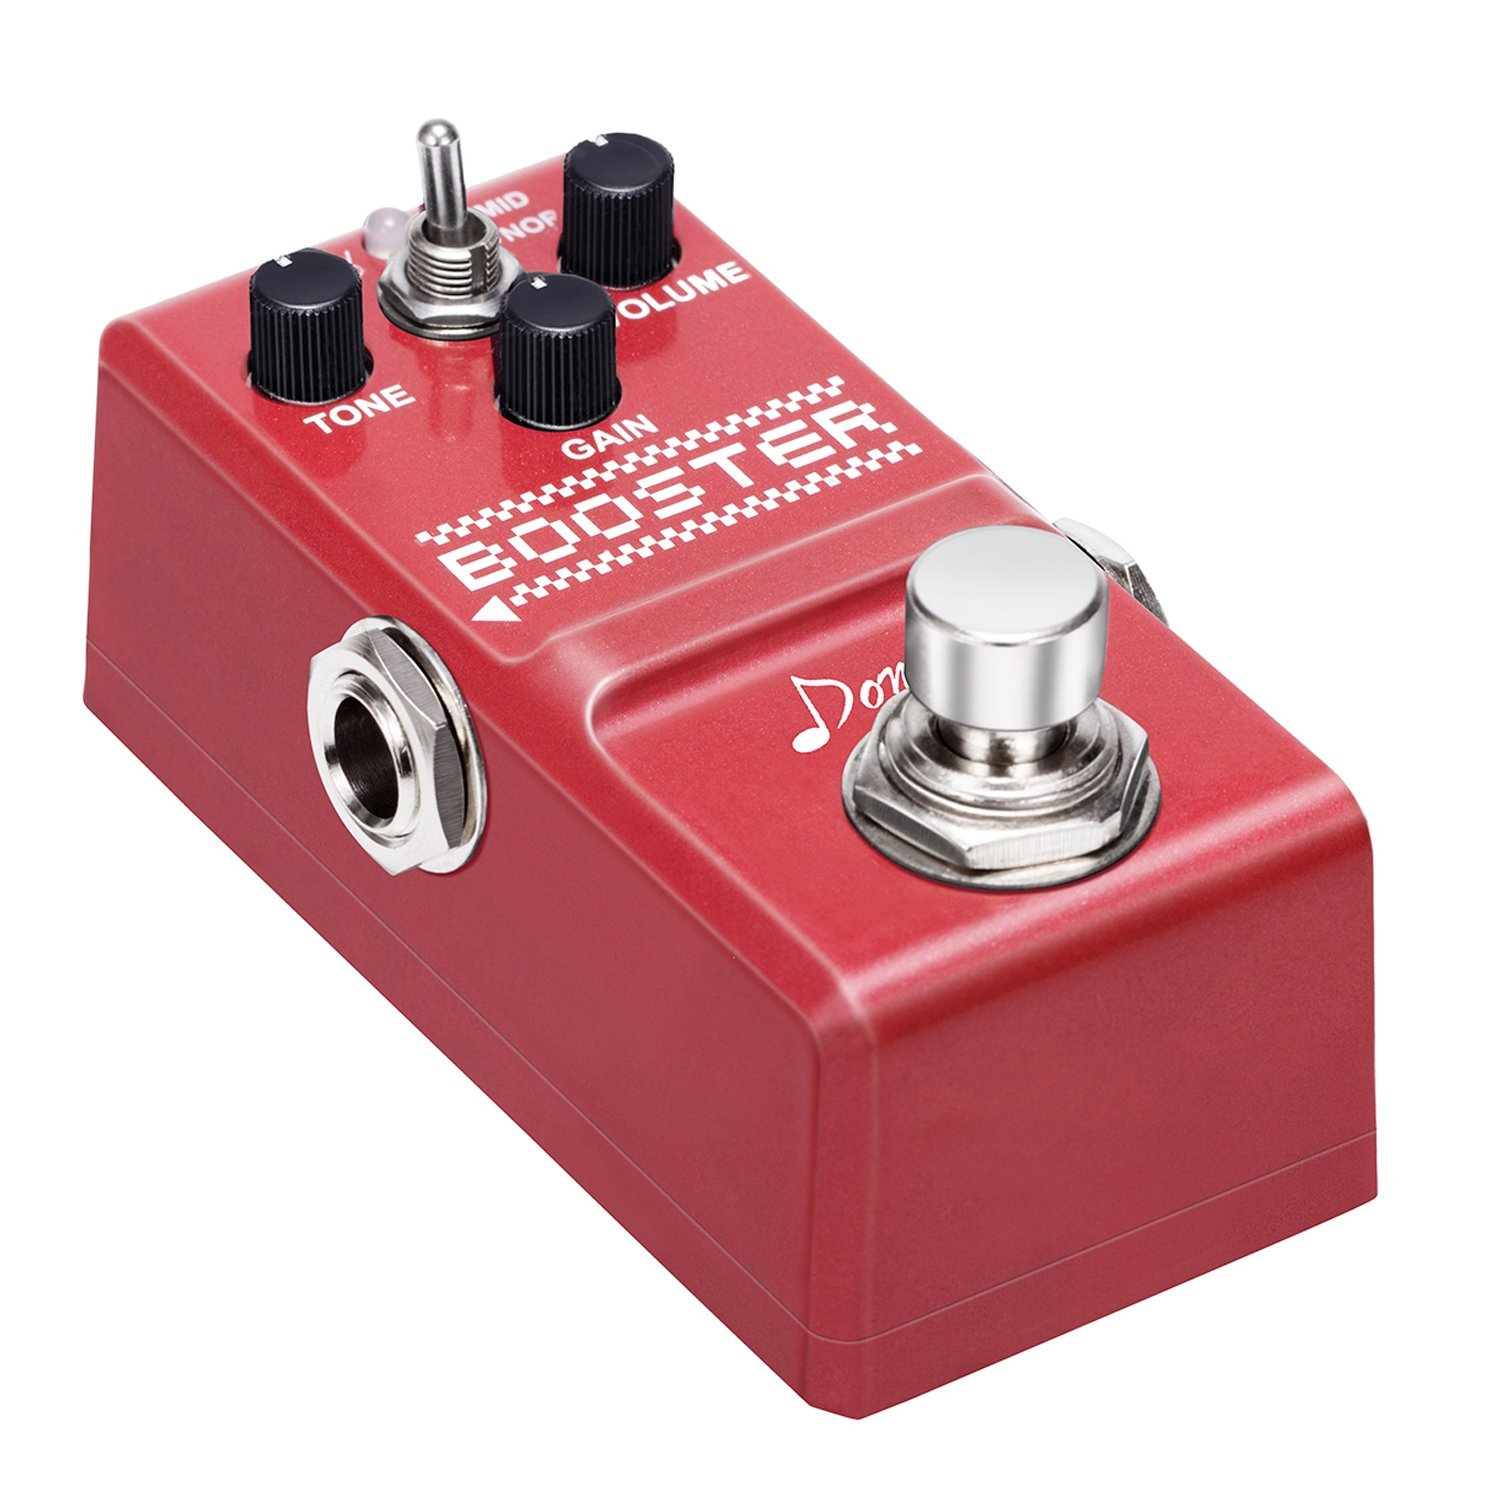 Donner Booster Boost Guitar Effect Pedal Super Mini Pedal